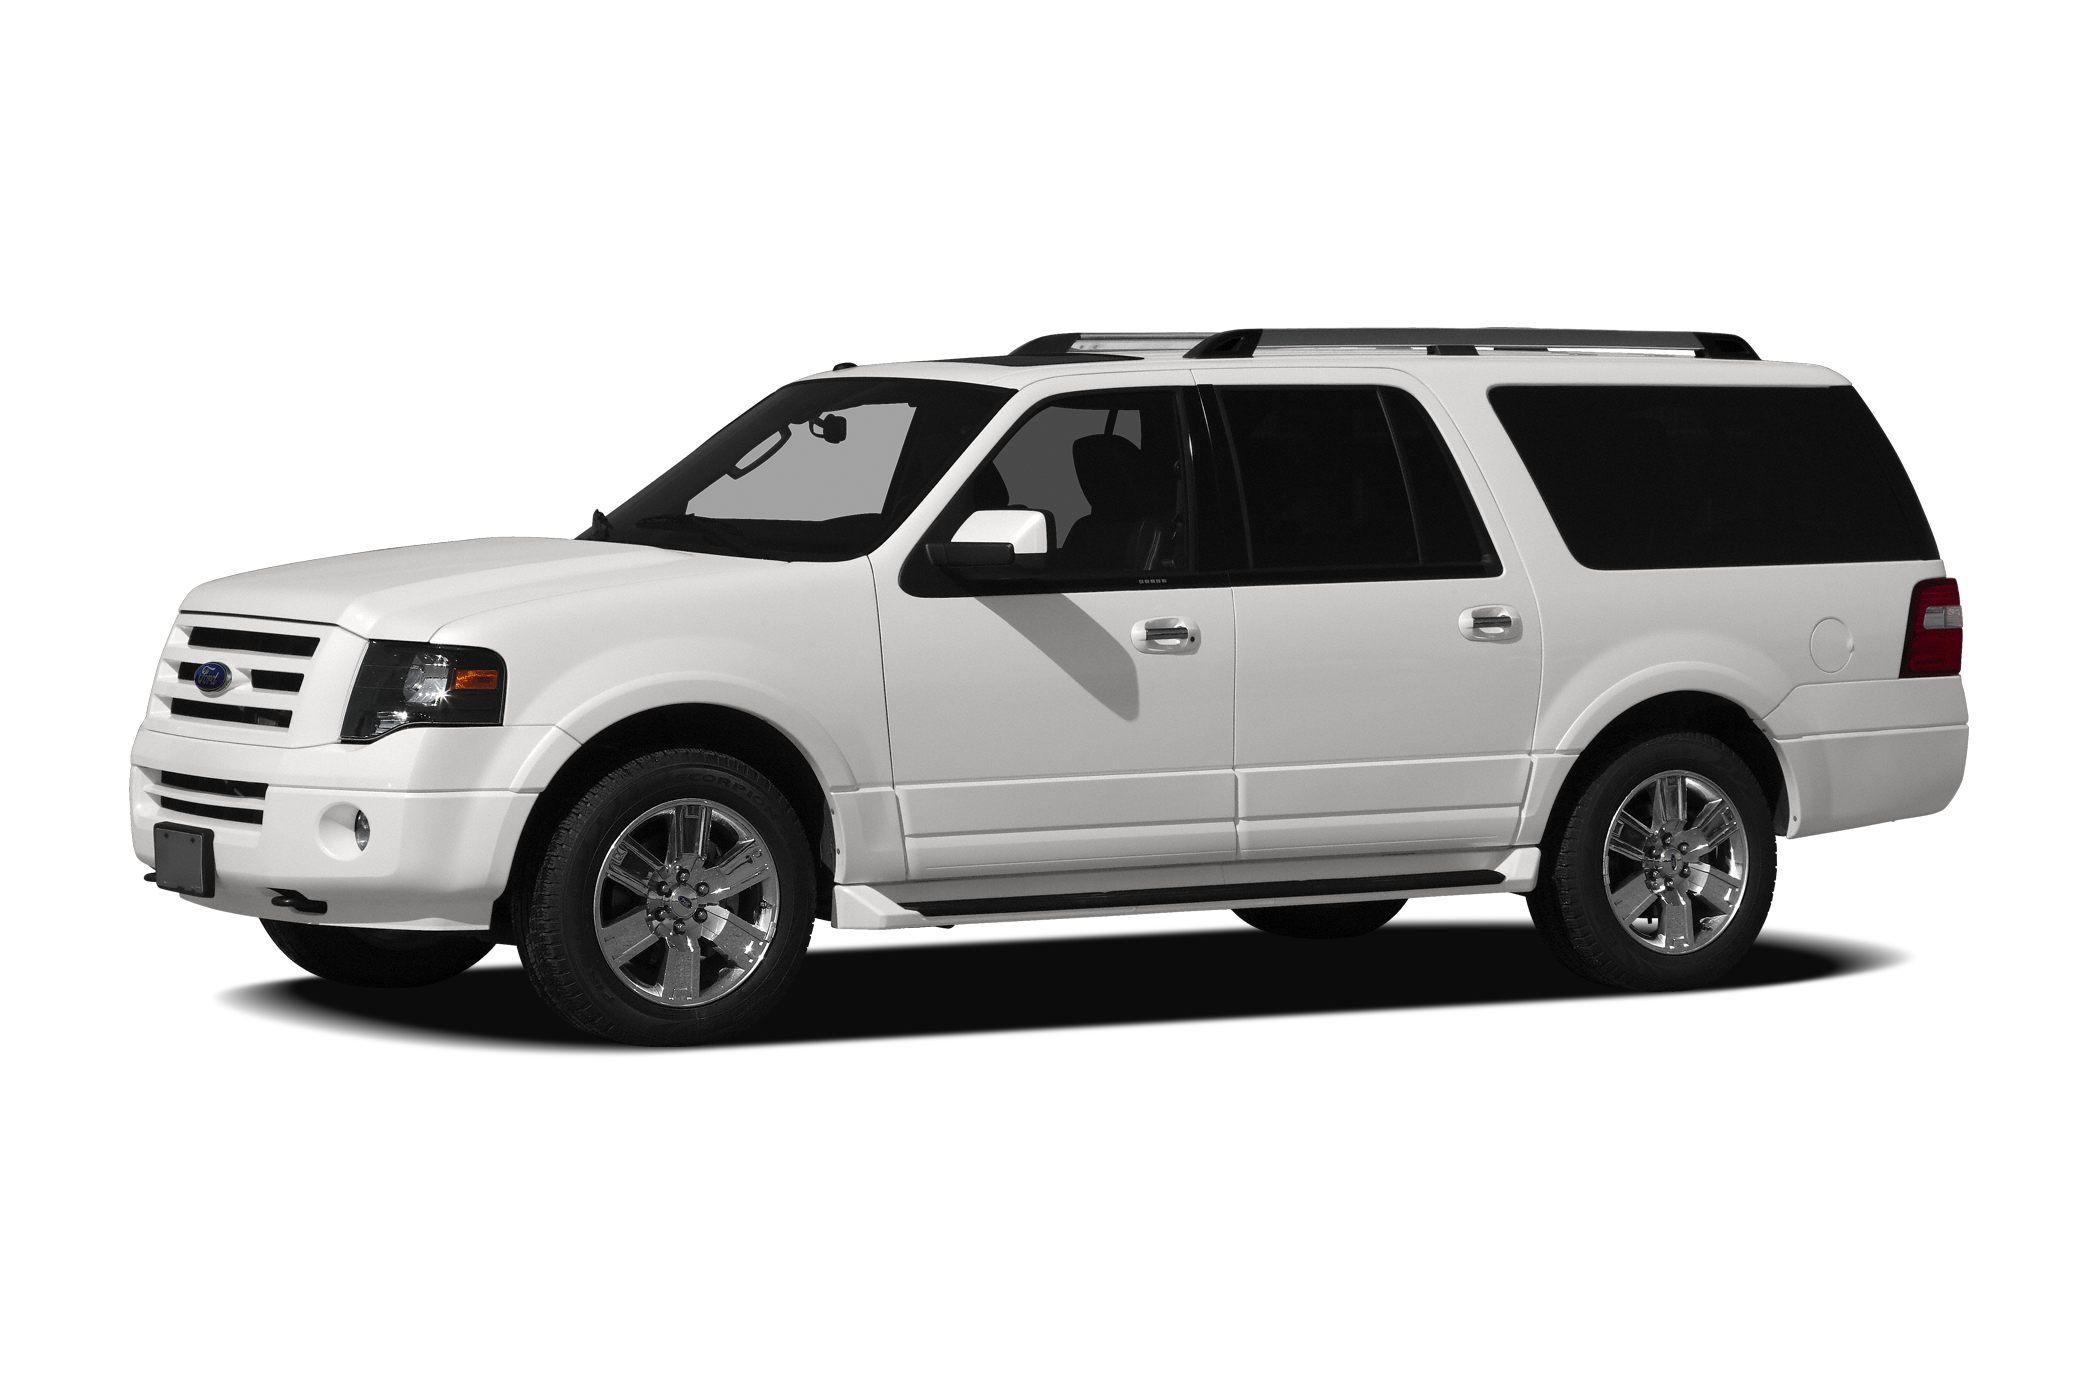 2010 Ford Expedition EL Limited SUV for sale in Houston for $21,990 with 120,800 miles